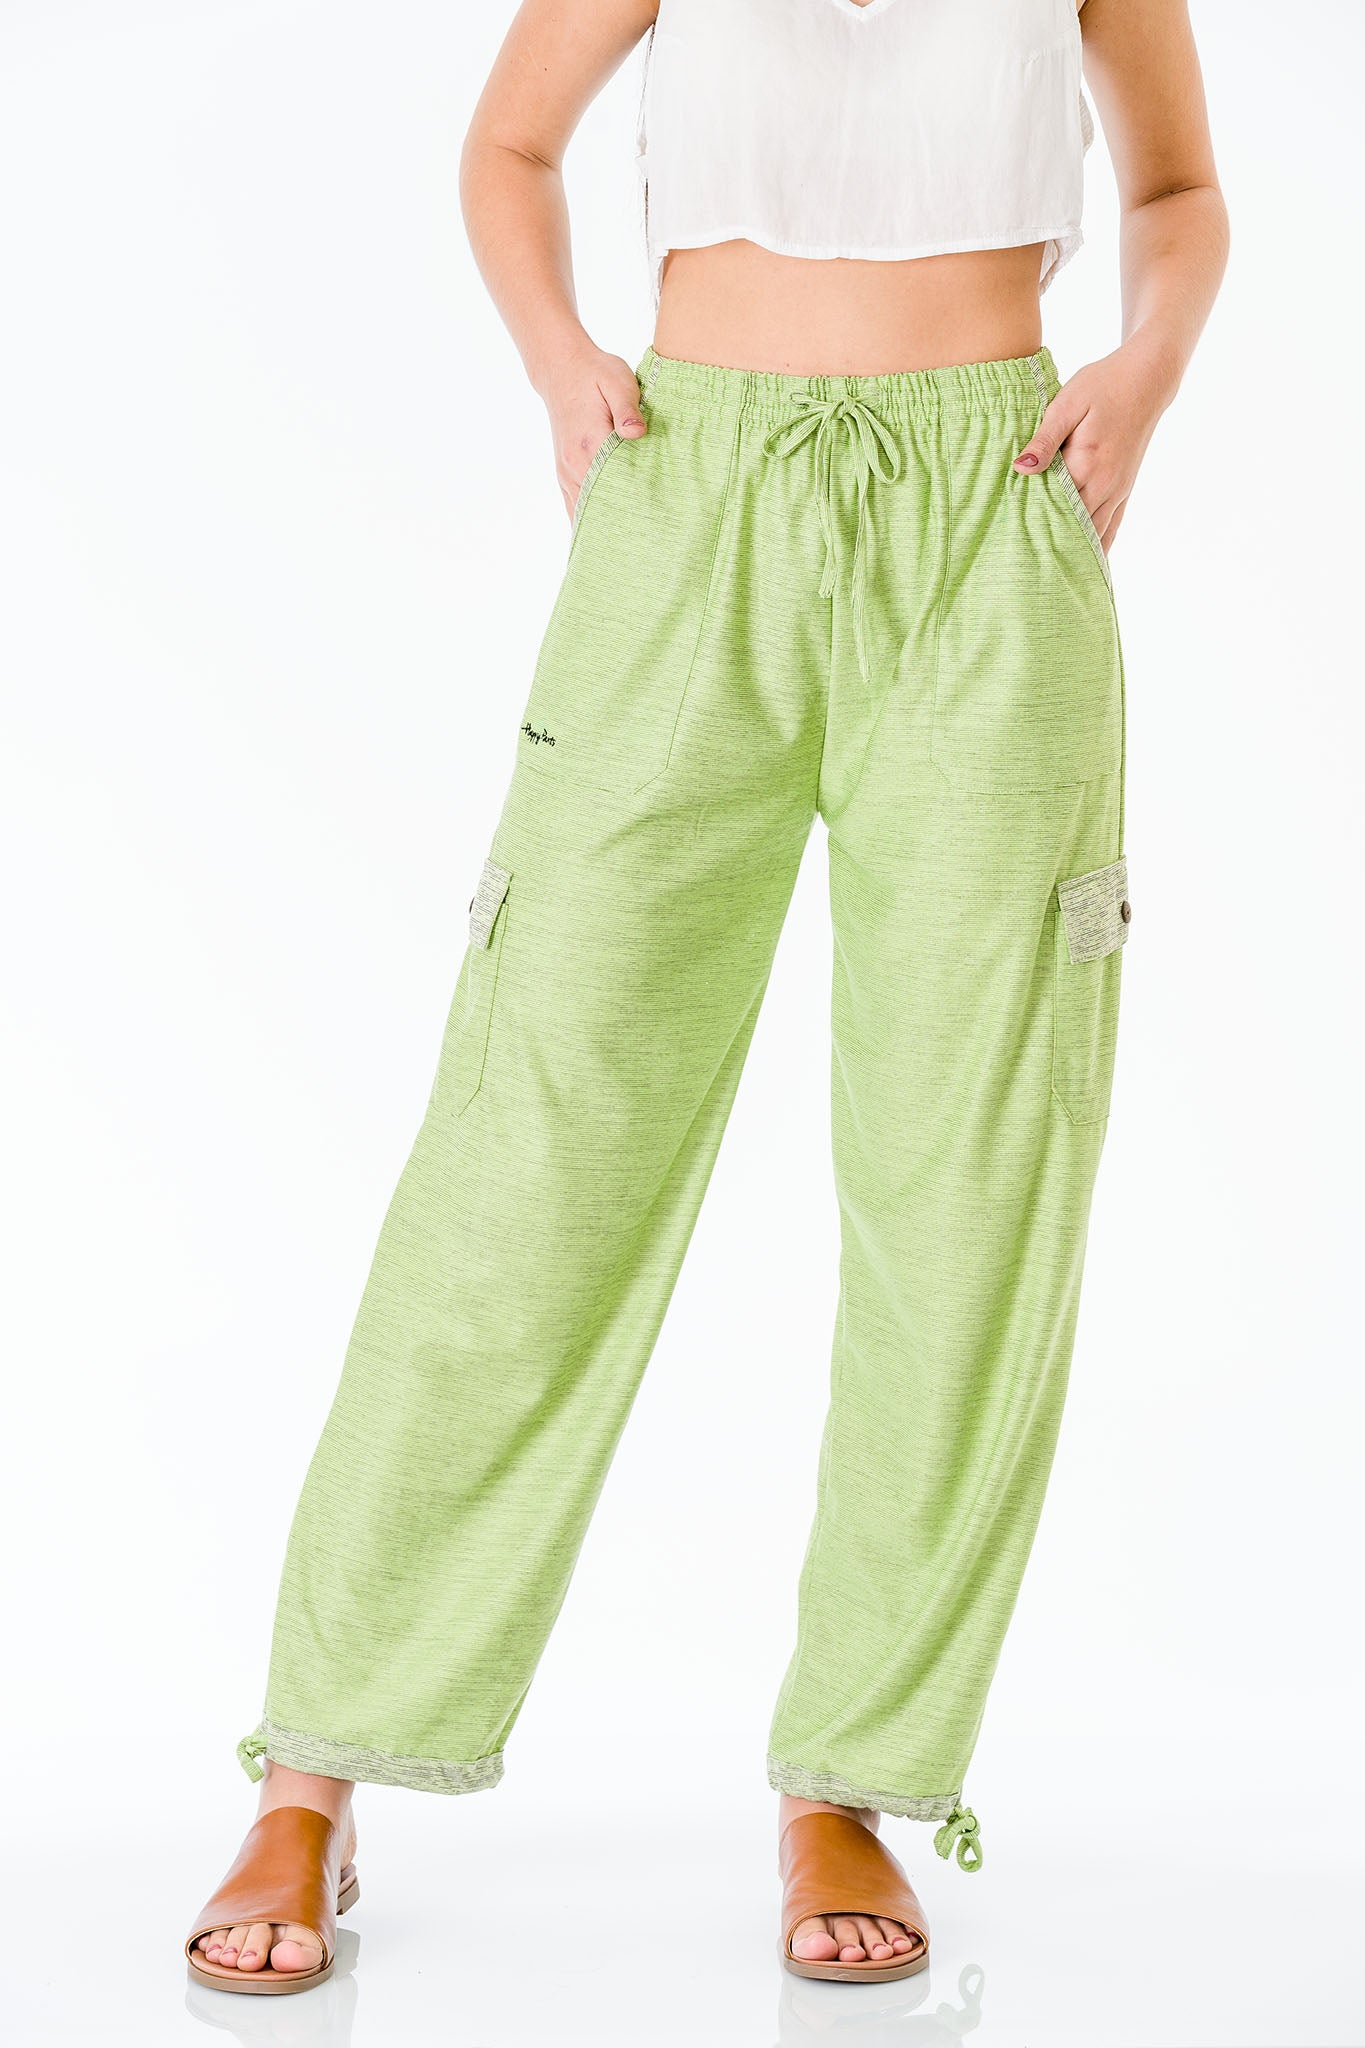 Green Apple Pants